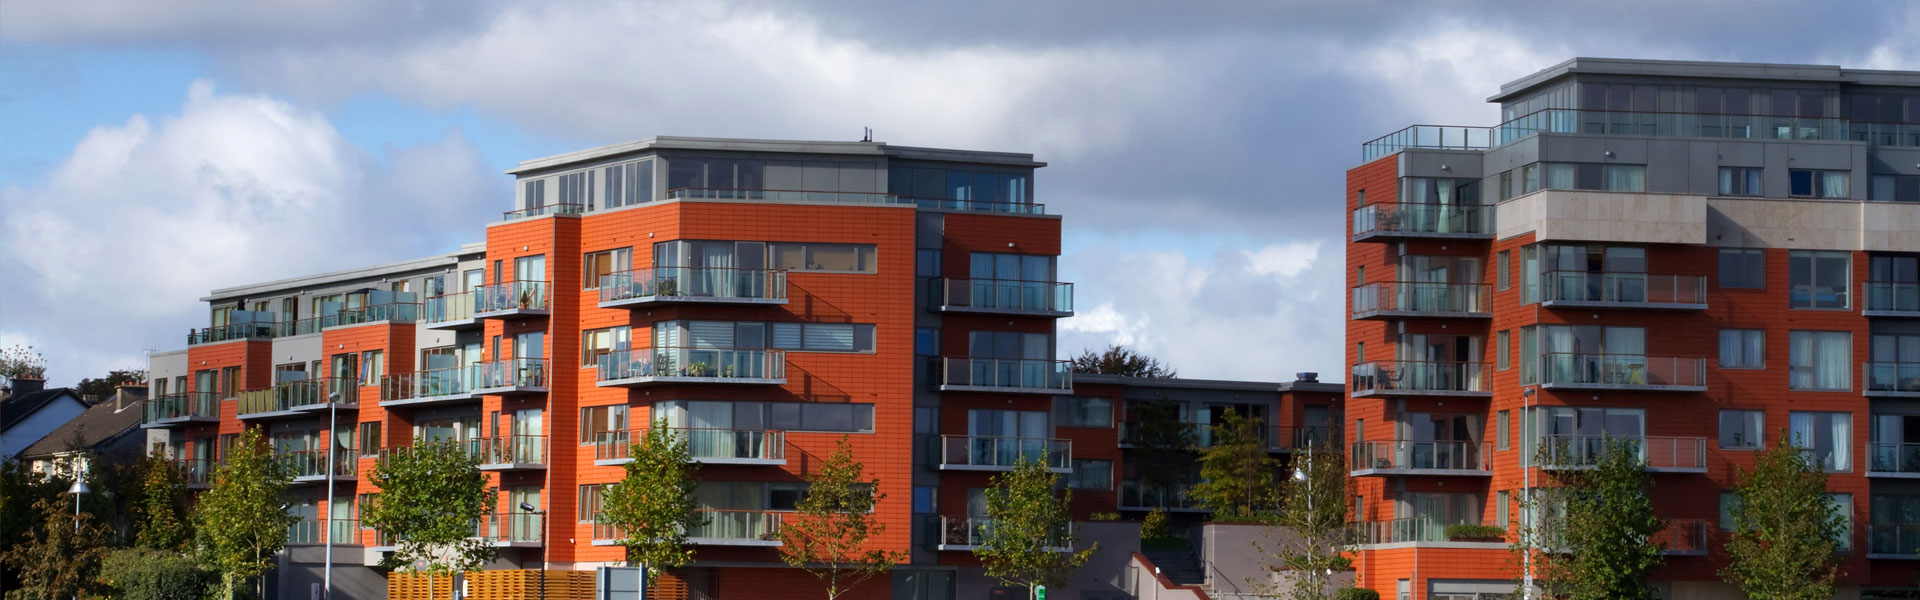 professional Commercial property management in Ballinakill